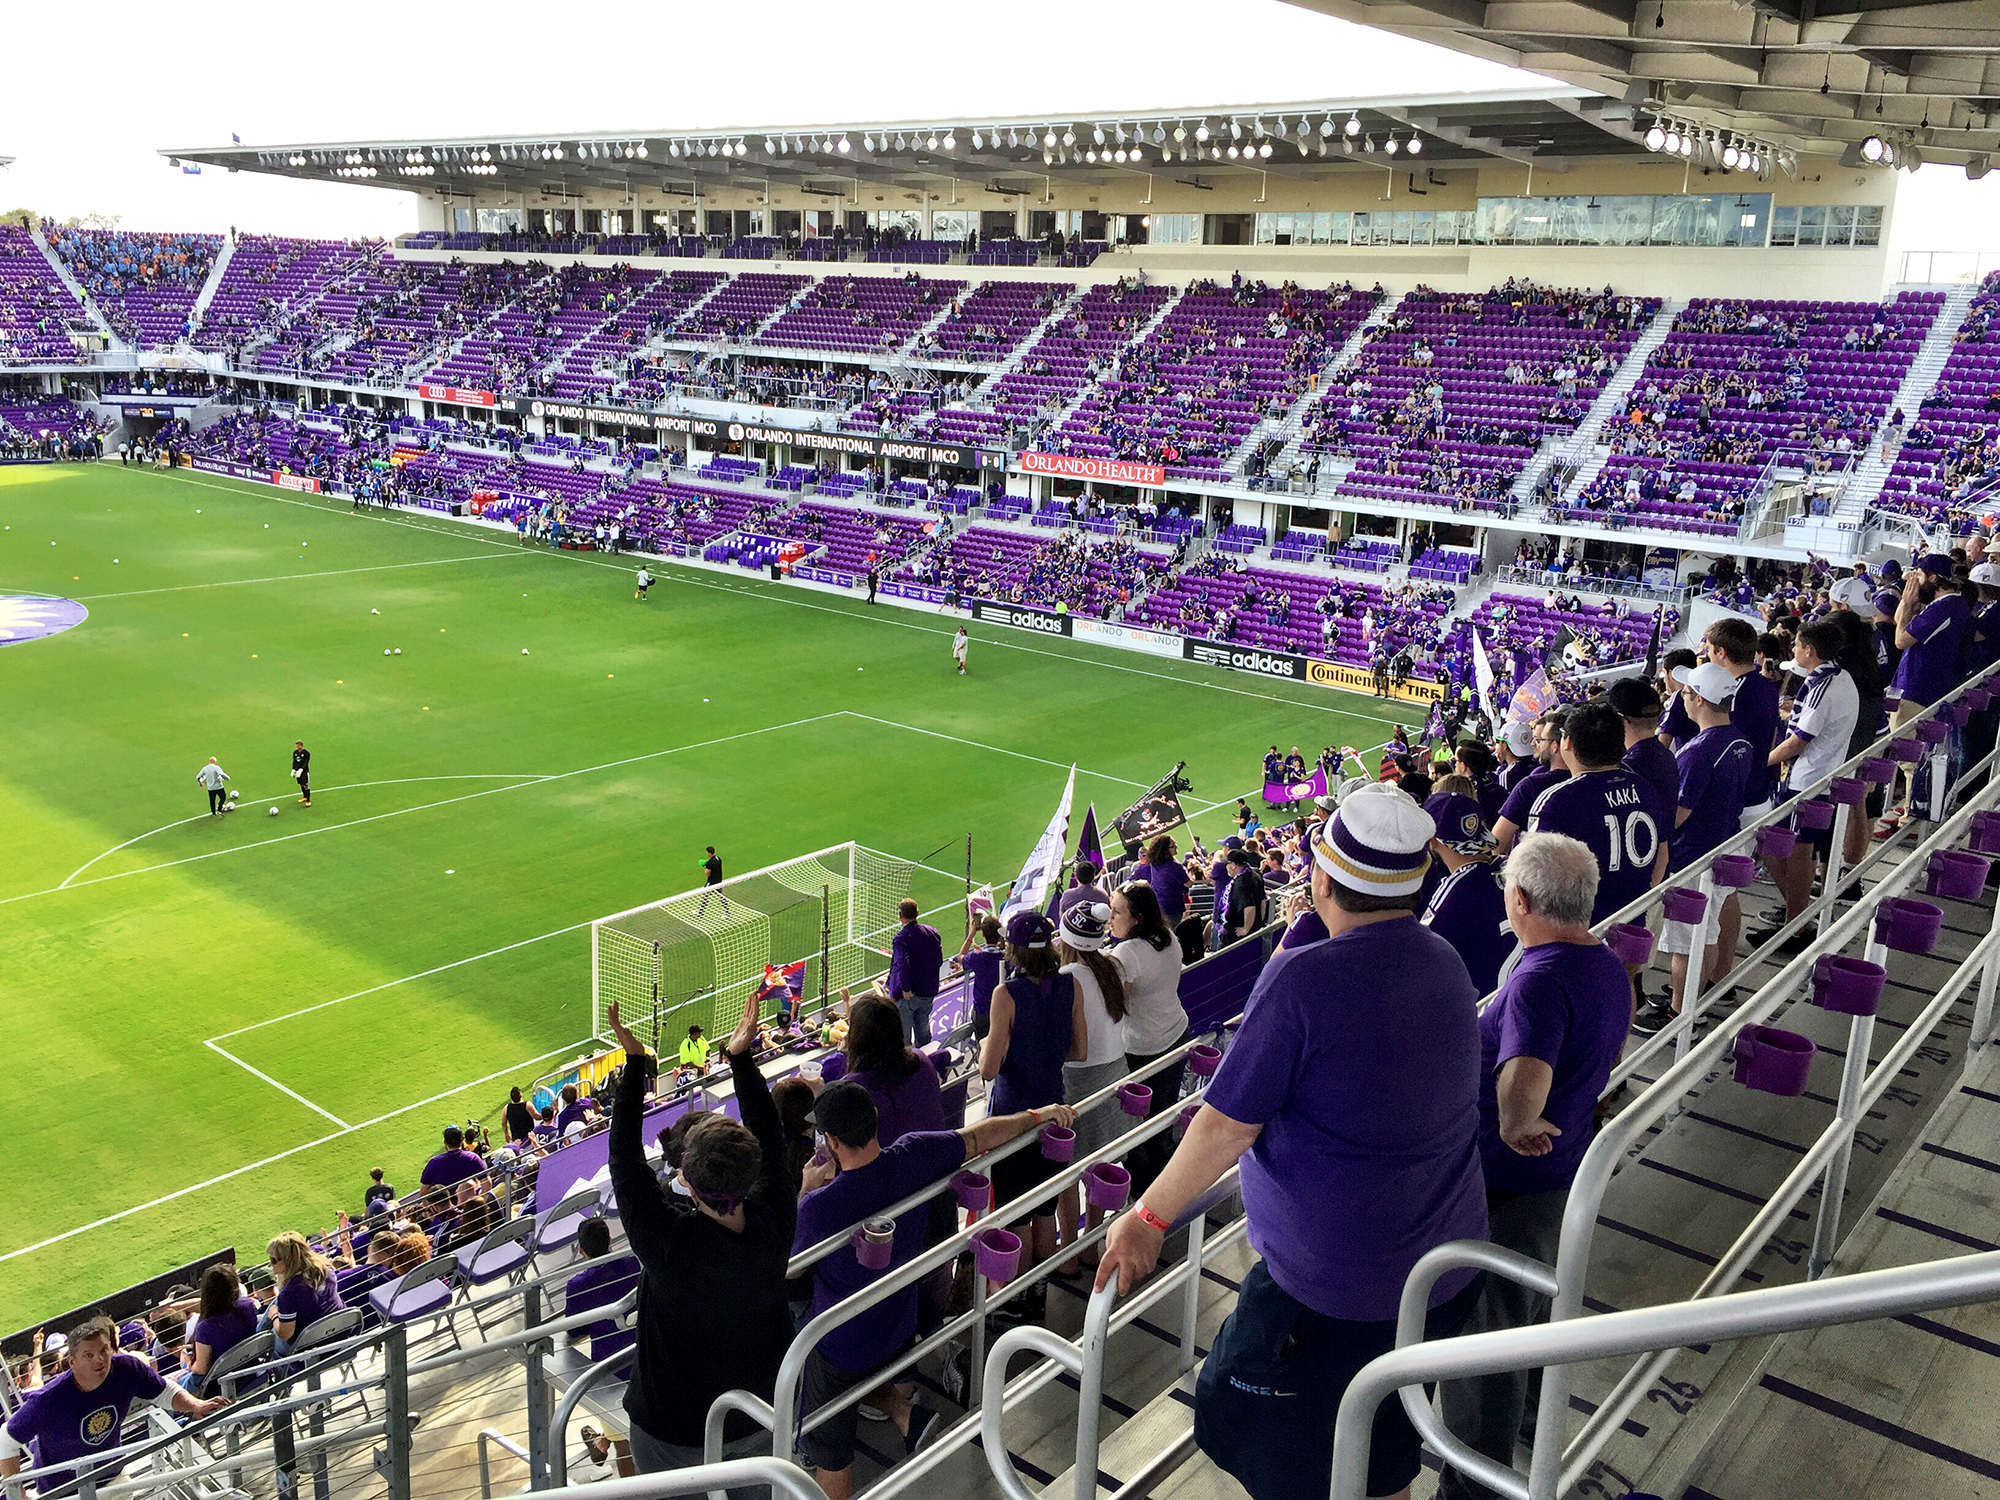 Mls Stadiums Listed Oldest To Newest Soccer Stadium Digest